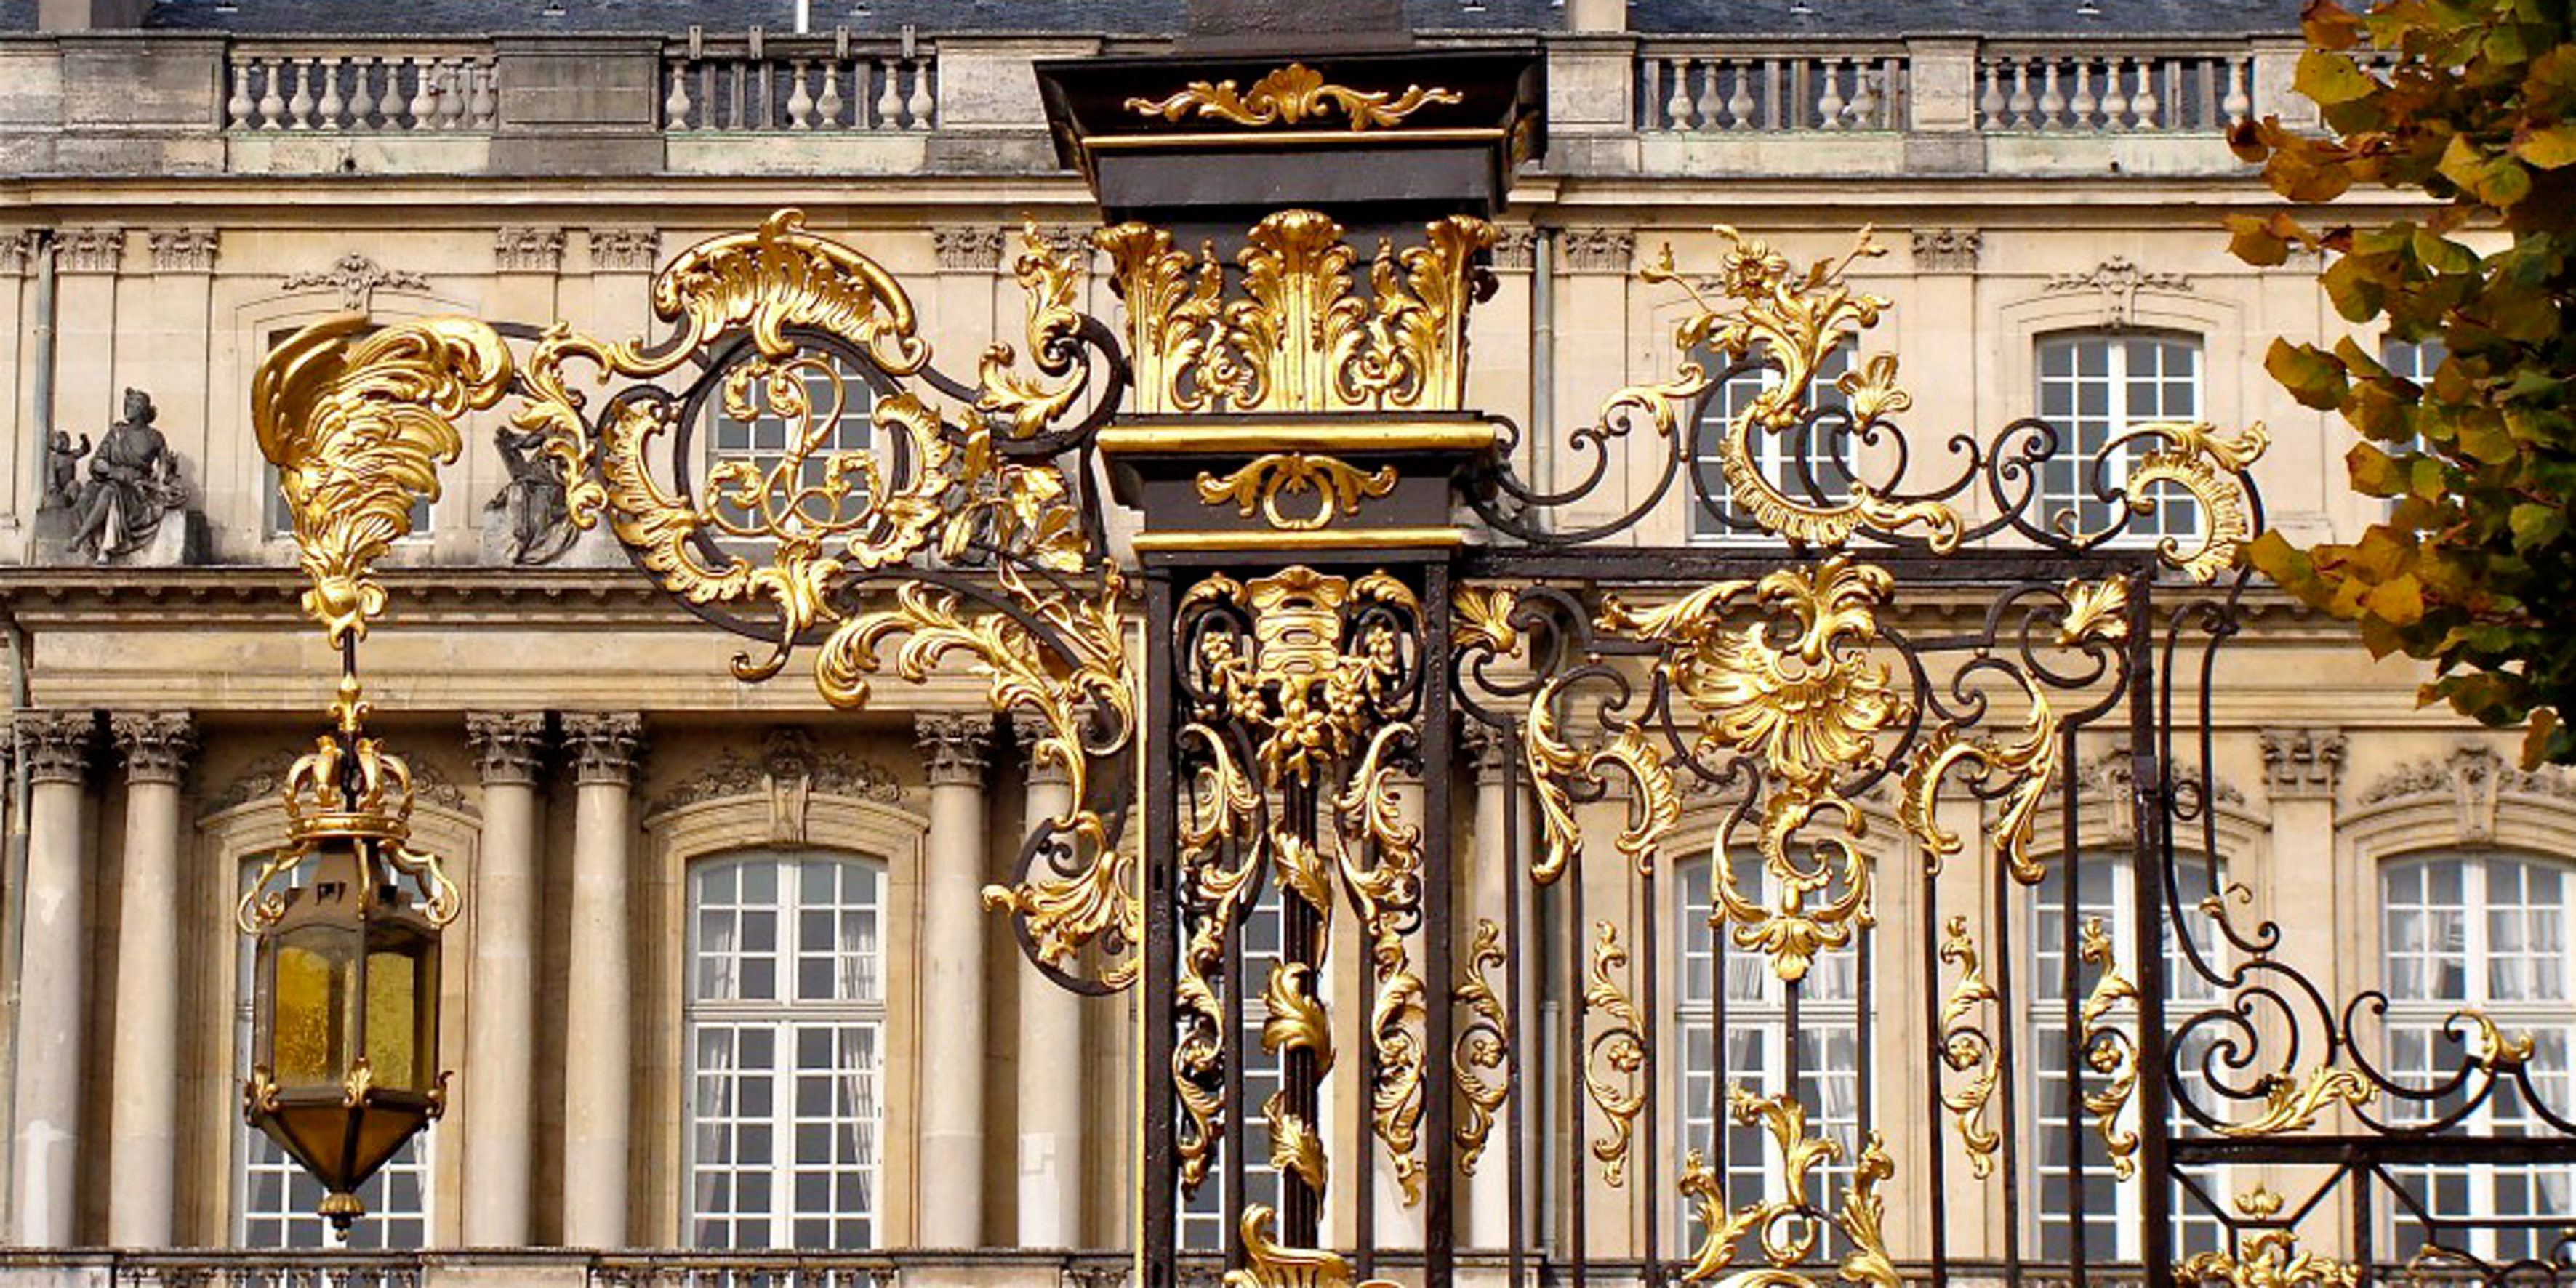 Nancy_Lanterne_Palais_ducal